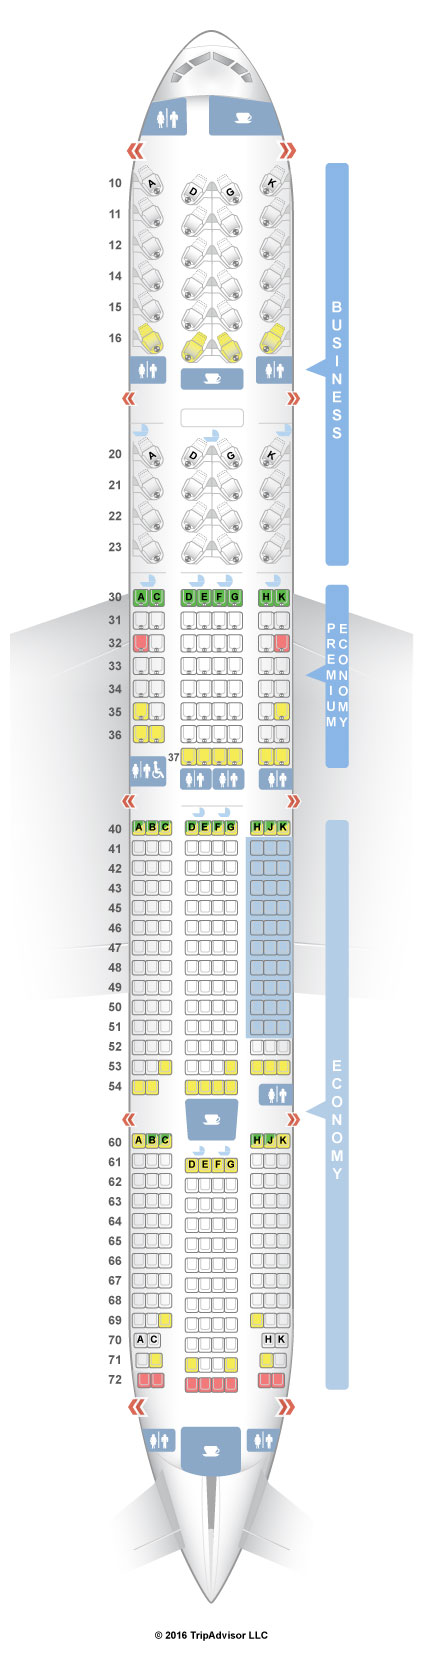 Cathay Pacific Aircraft 333 Seating Plan The Best And Latest